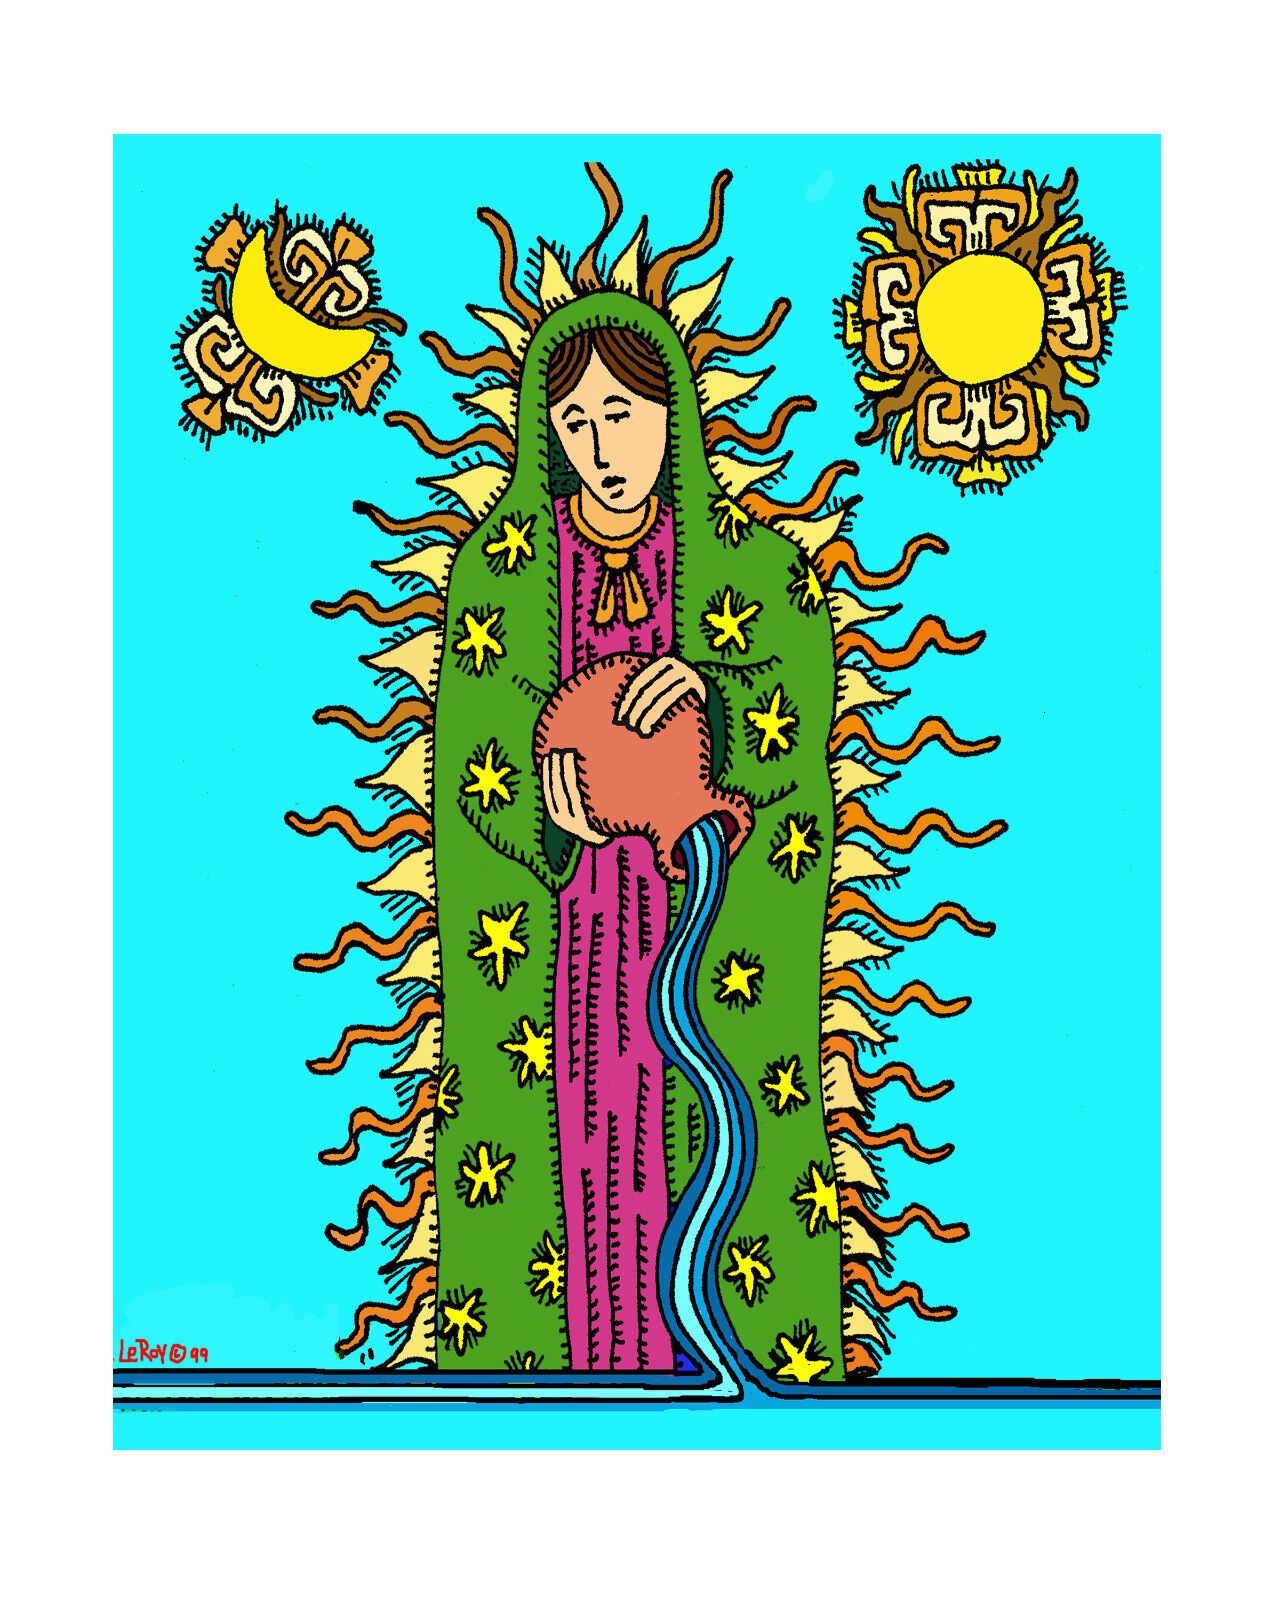 CANDELITO - FINE ART PRINT FROM ORIGINAL DRAWING - LUPE AGUA  - $11.99